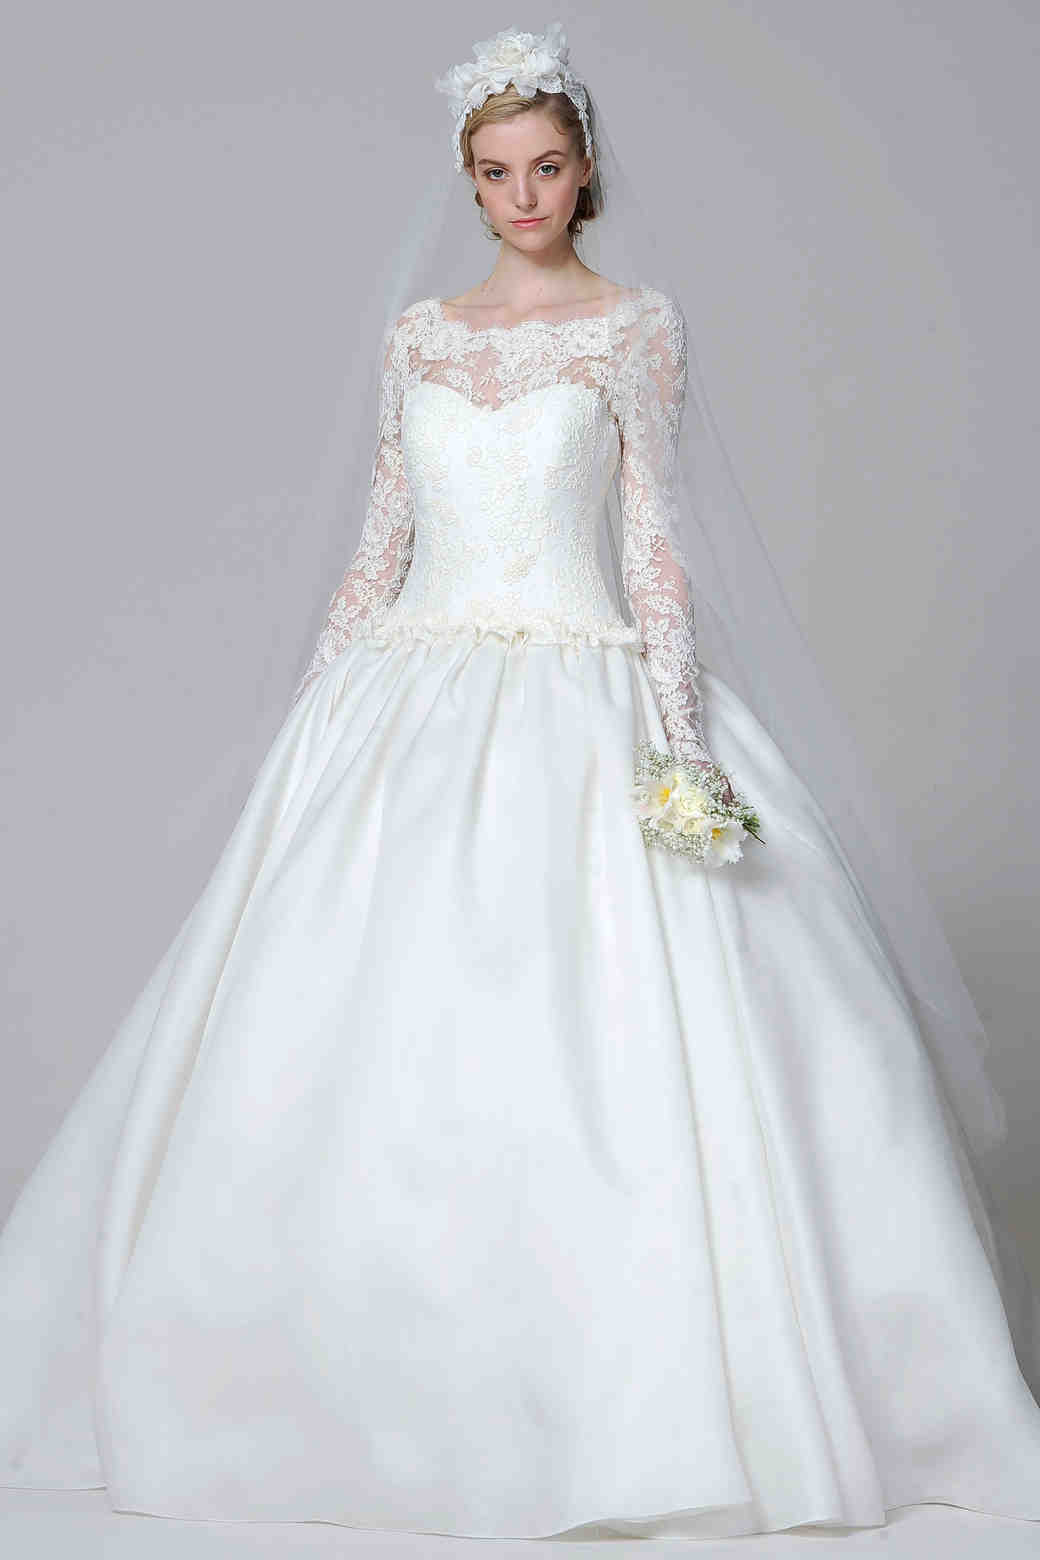 Long sleeve wedding dresses spring 2013 bridal fashion for Long wedding dresses with sleeves